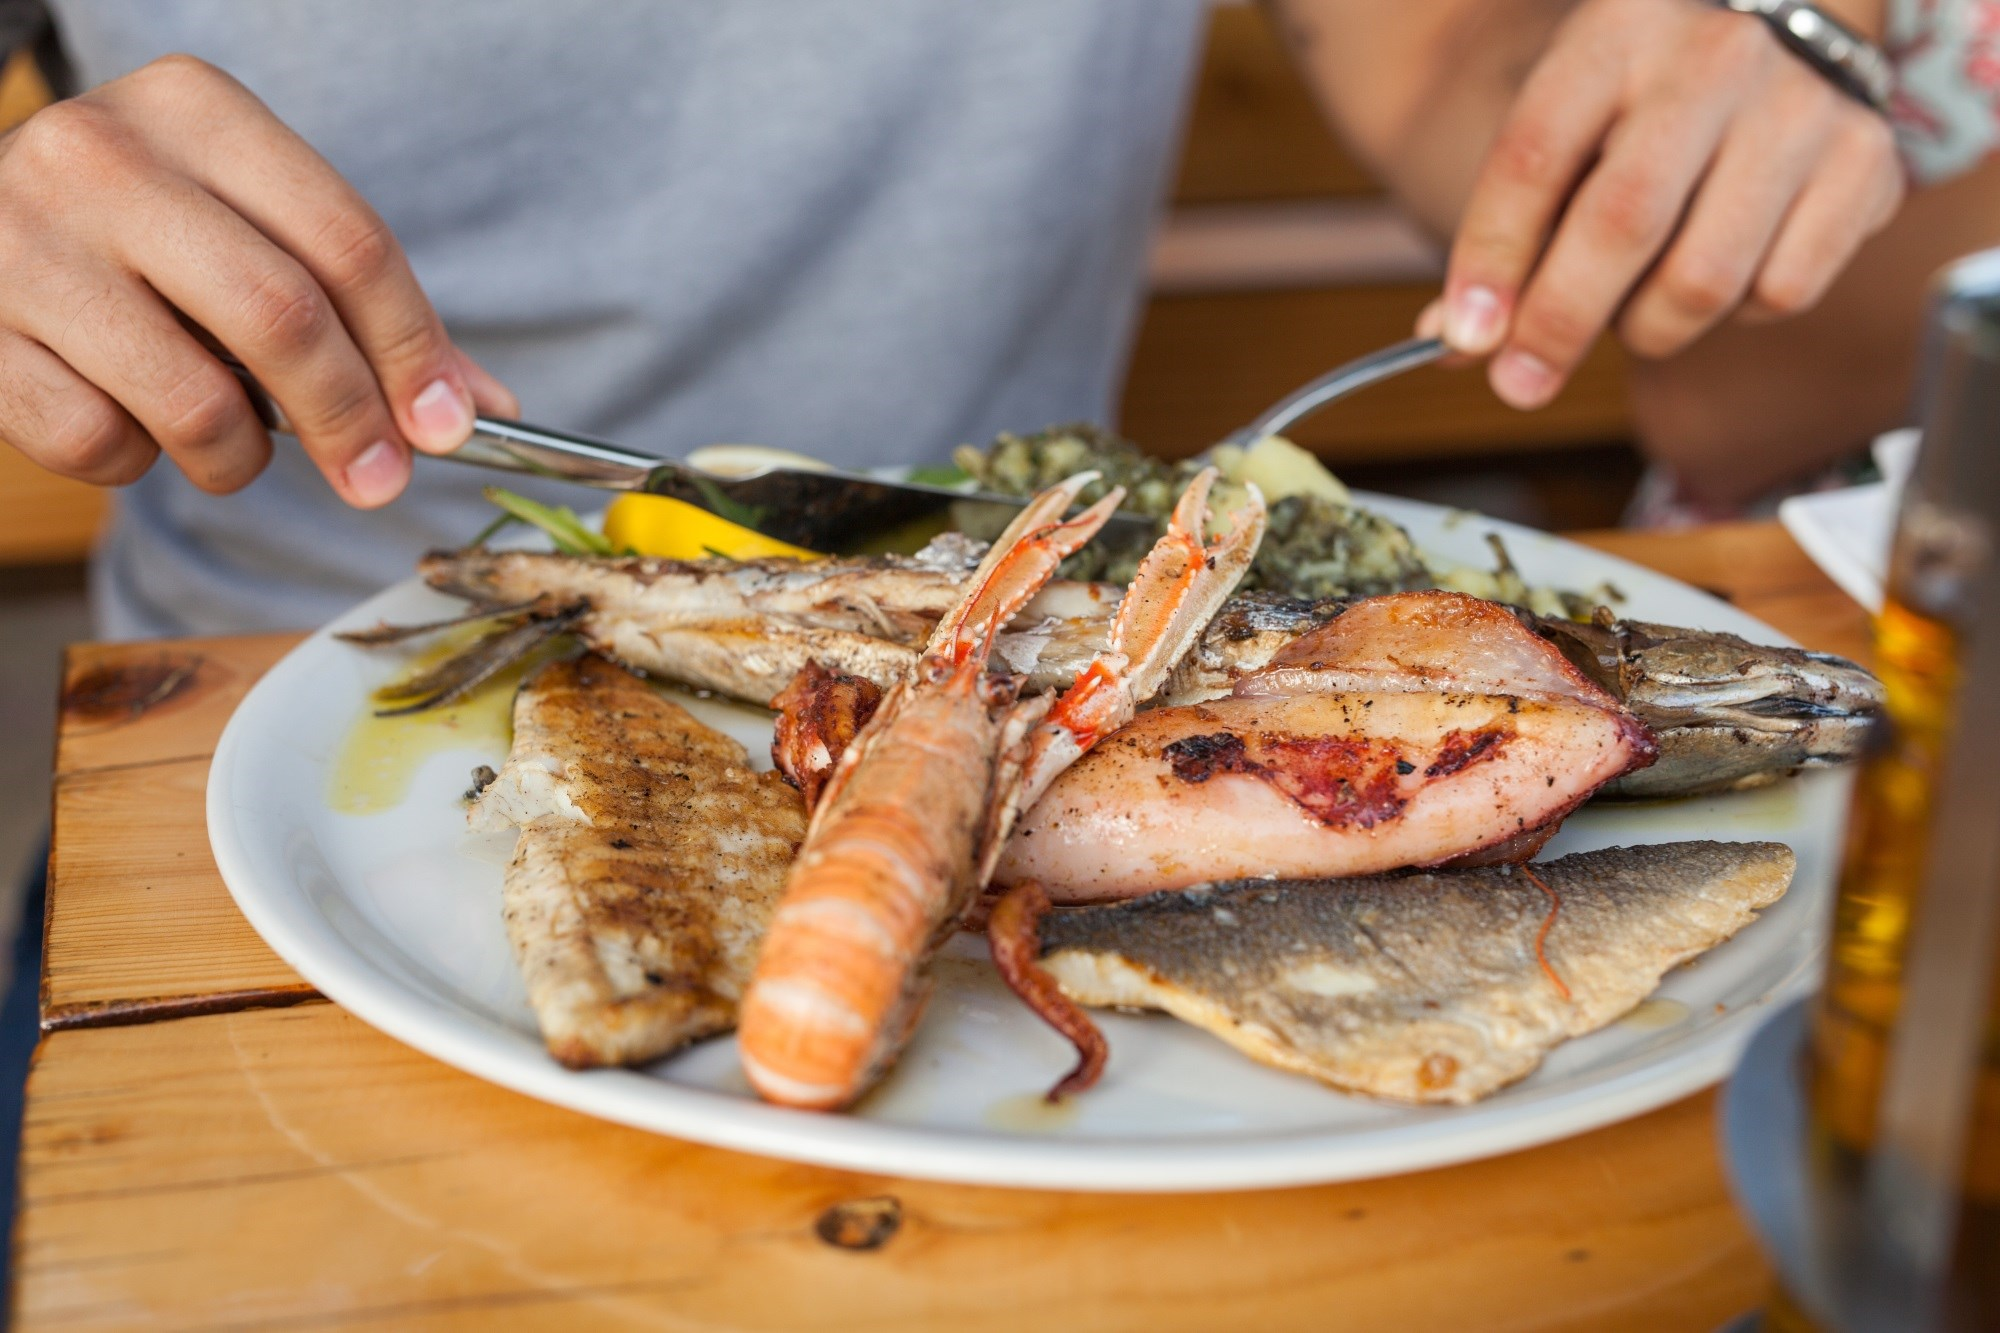 Study data do not provide evidence to recommend fish or omega-3 fatty acid intake to those at risk for RA.